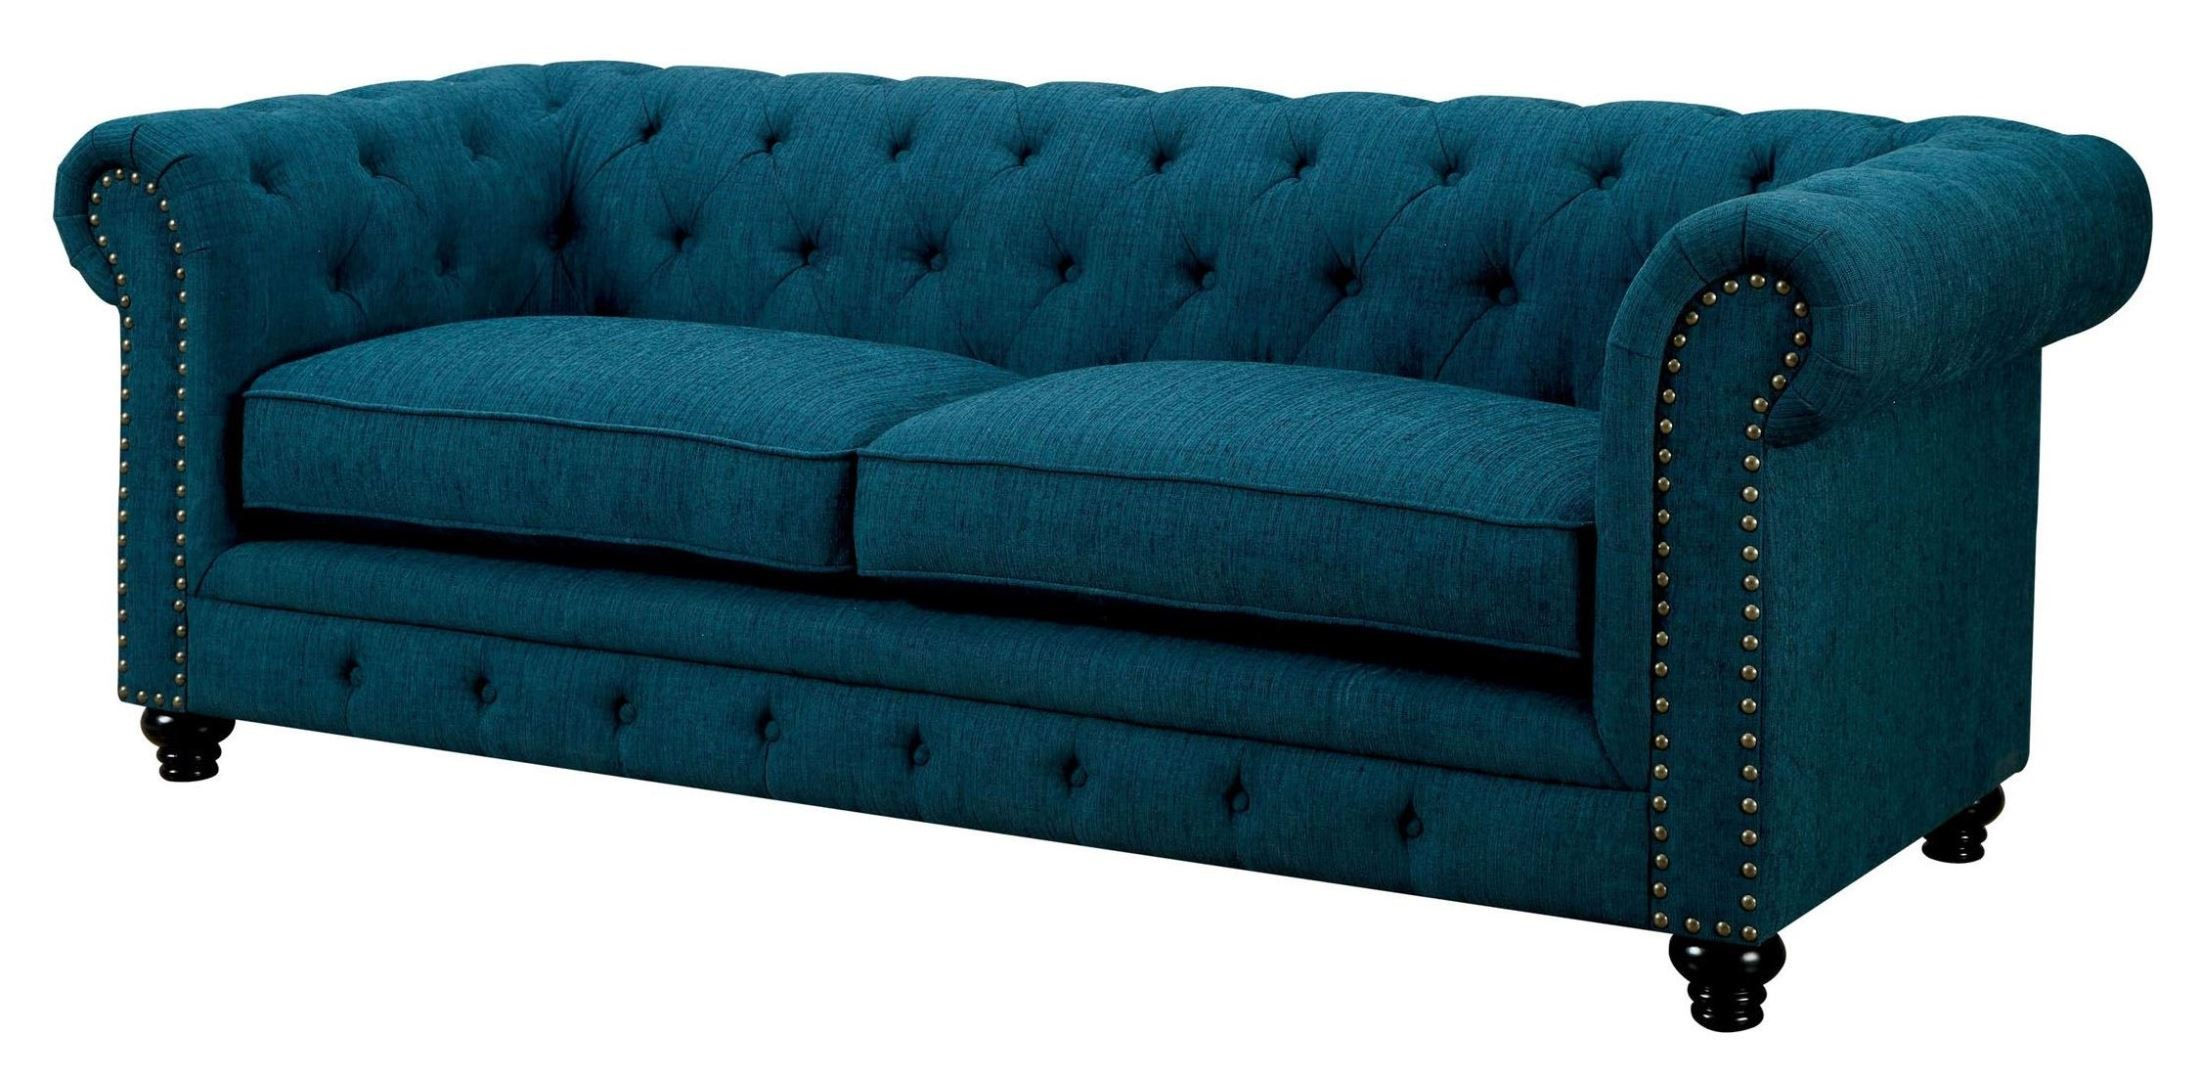 Stanford Dark Teal Fabric Sofa from Furniture of America CM6269TL